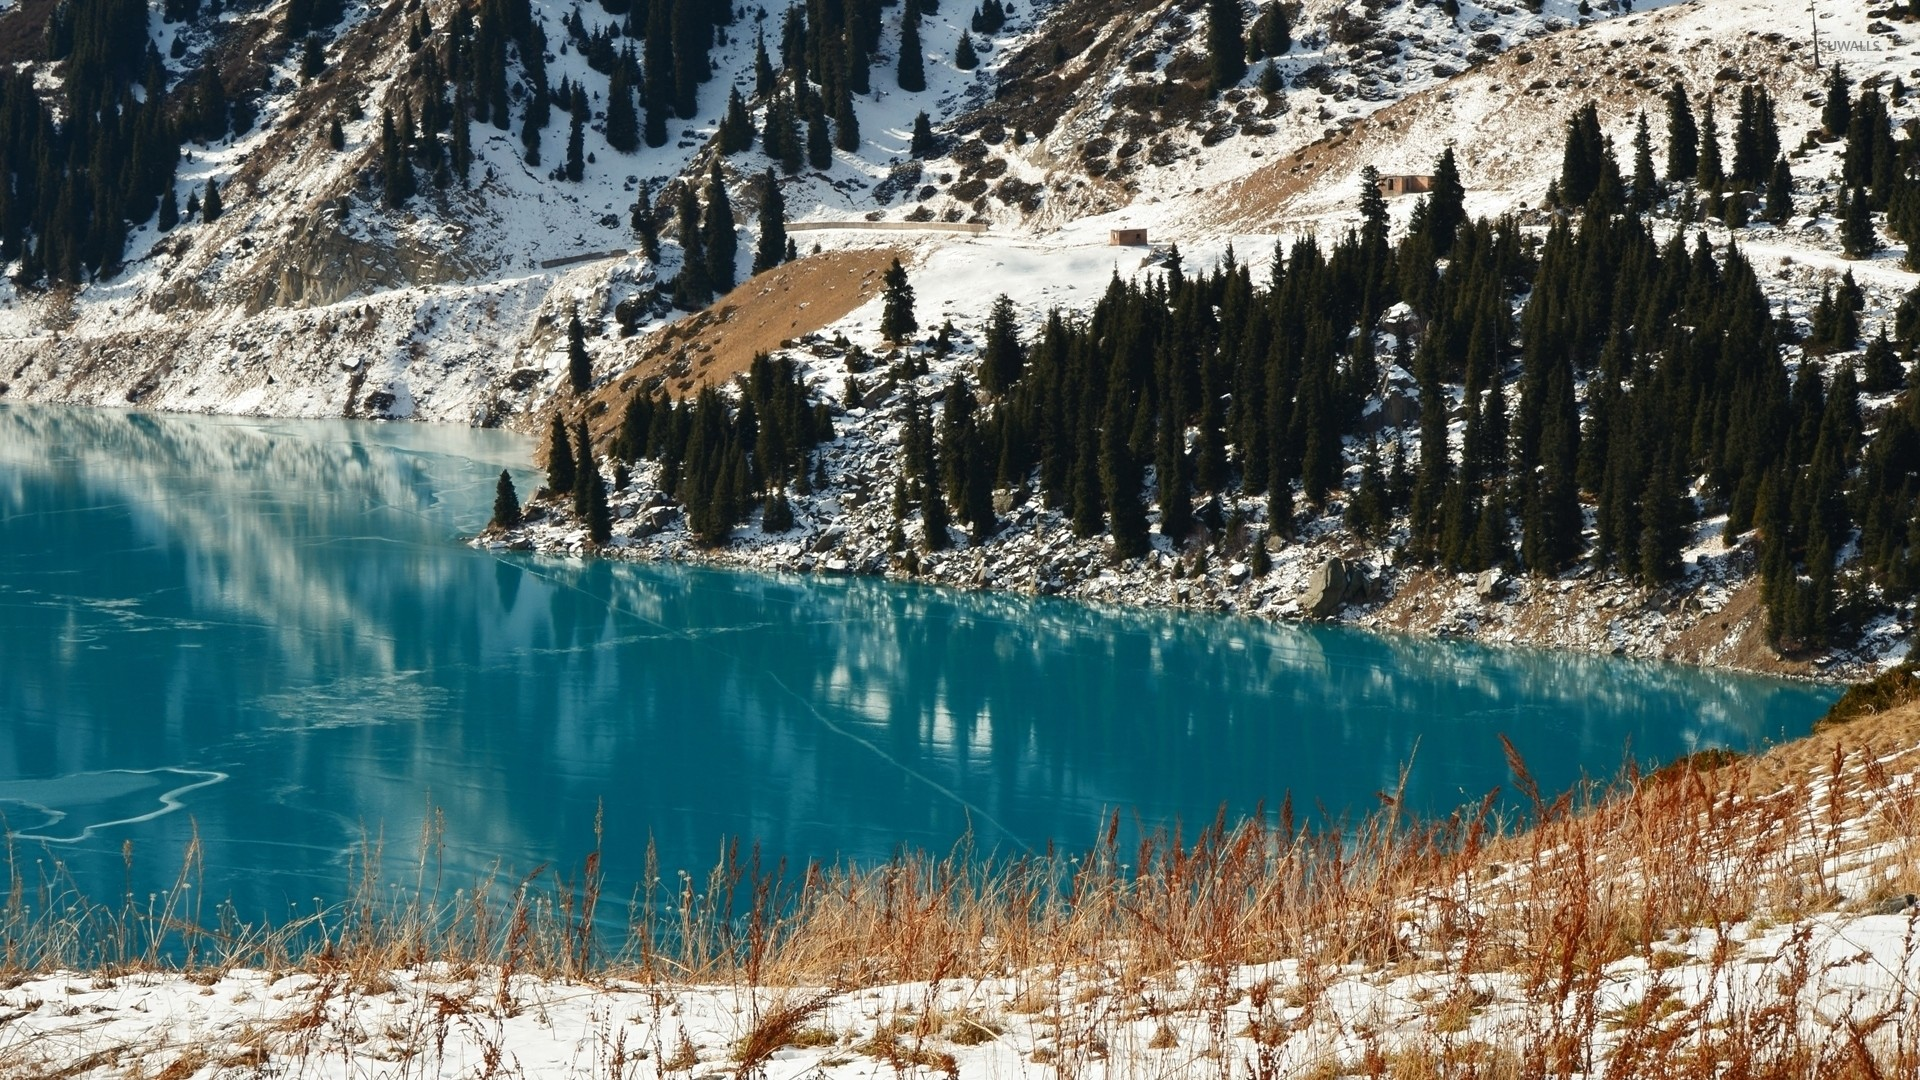 1920x1080 Late winter by the clear turquoise lake wallpaper